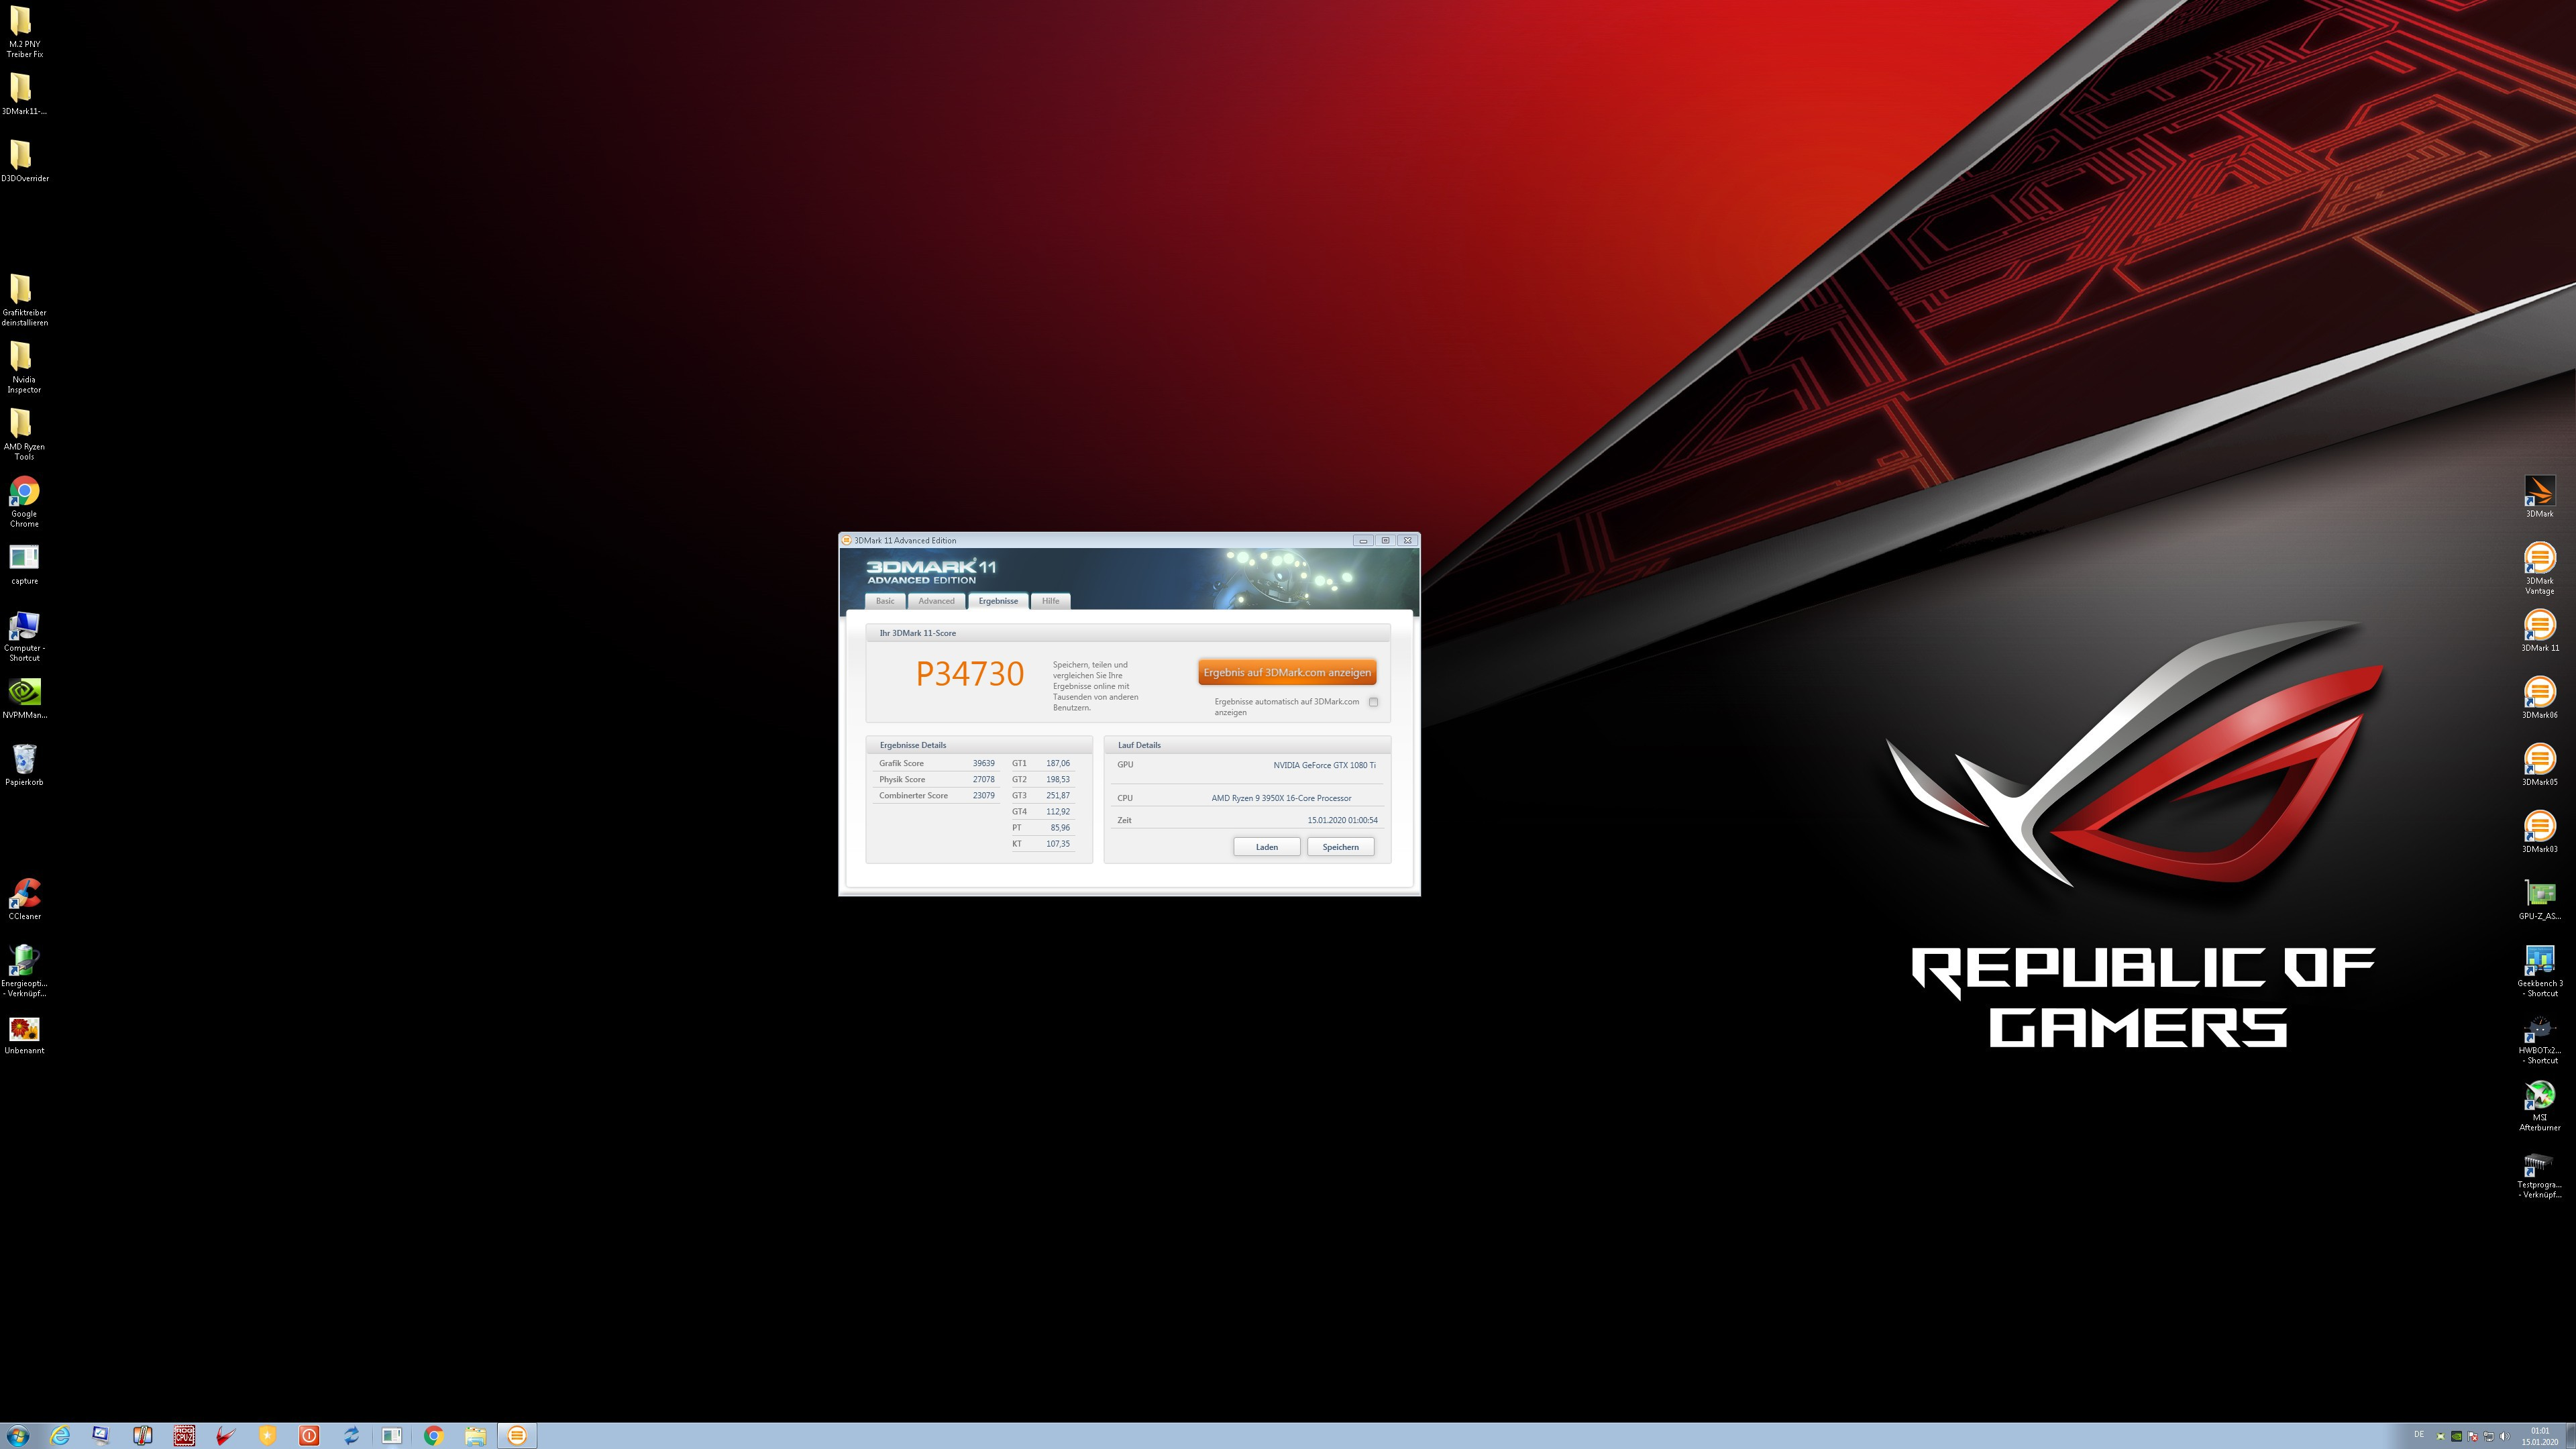 Forum - RE: [Solution] Win7 drivers for USB 3.0/3.1 Controllers of new AMD X570 mainboard. - 9